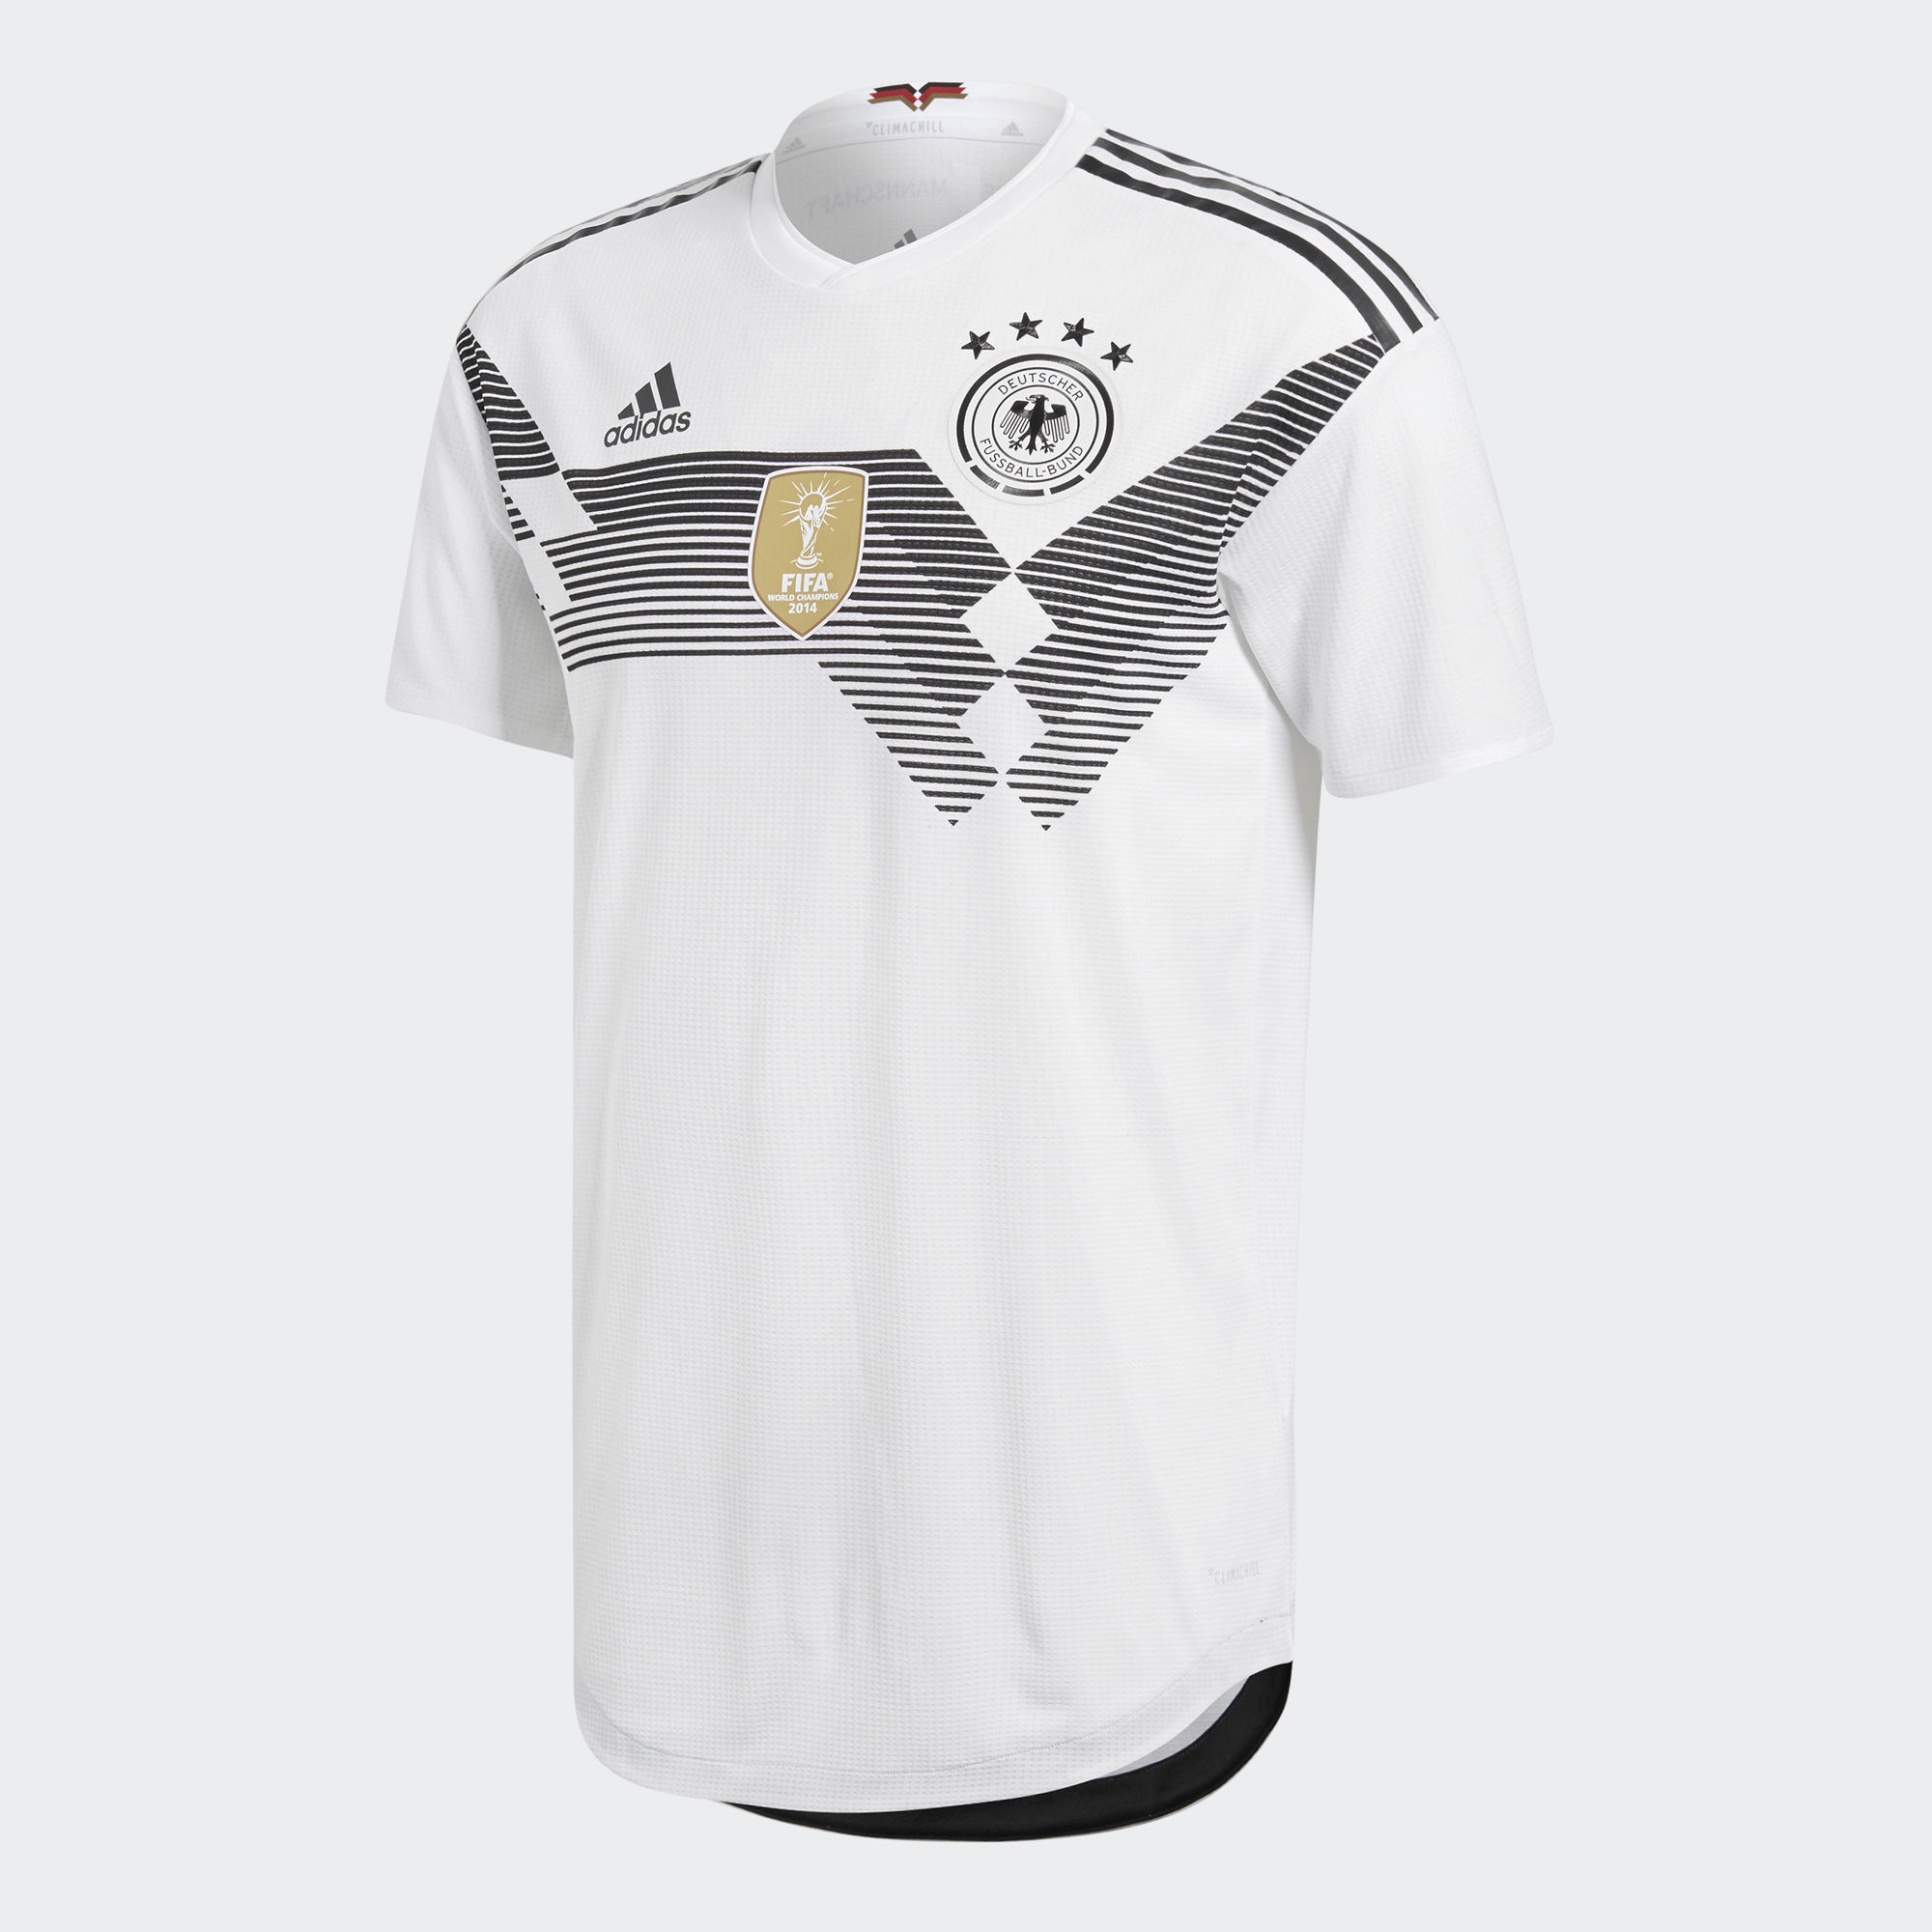 7cd4e8be72f ... Click to enlarge image germany 2018 world cup adidas home kit e.jpg ...